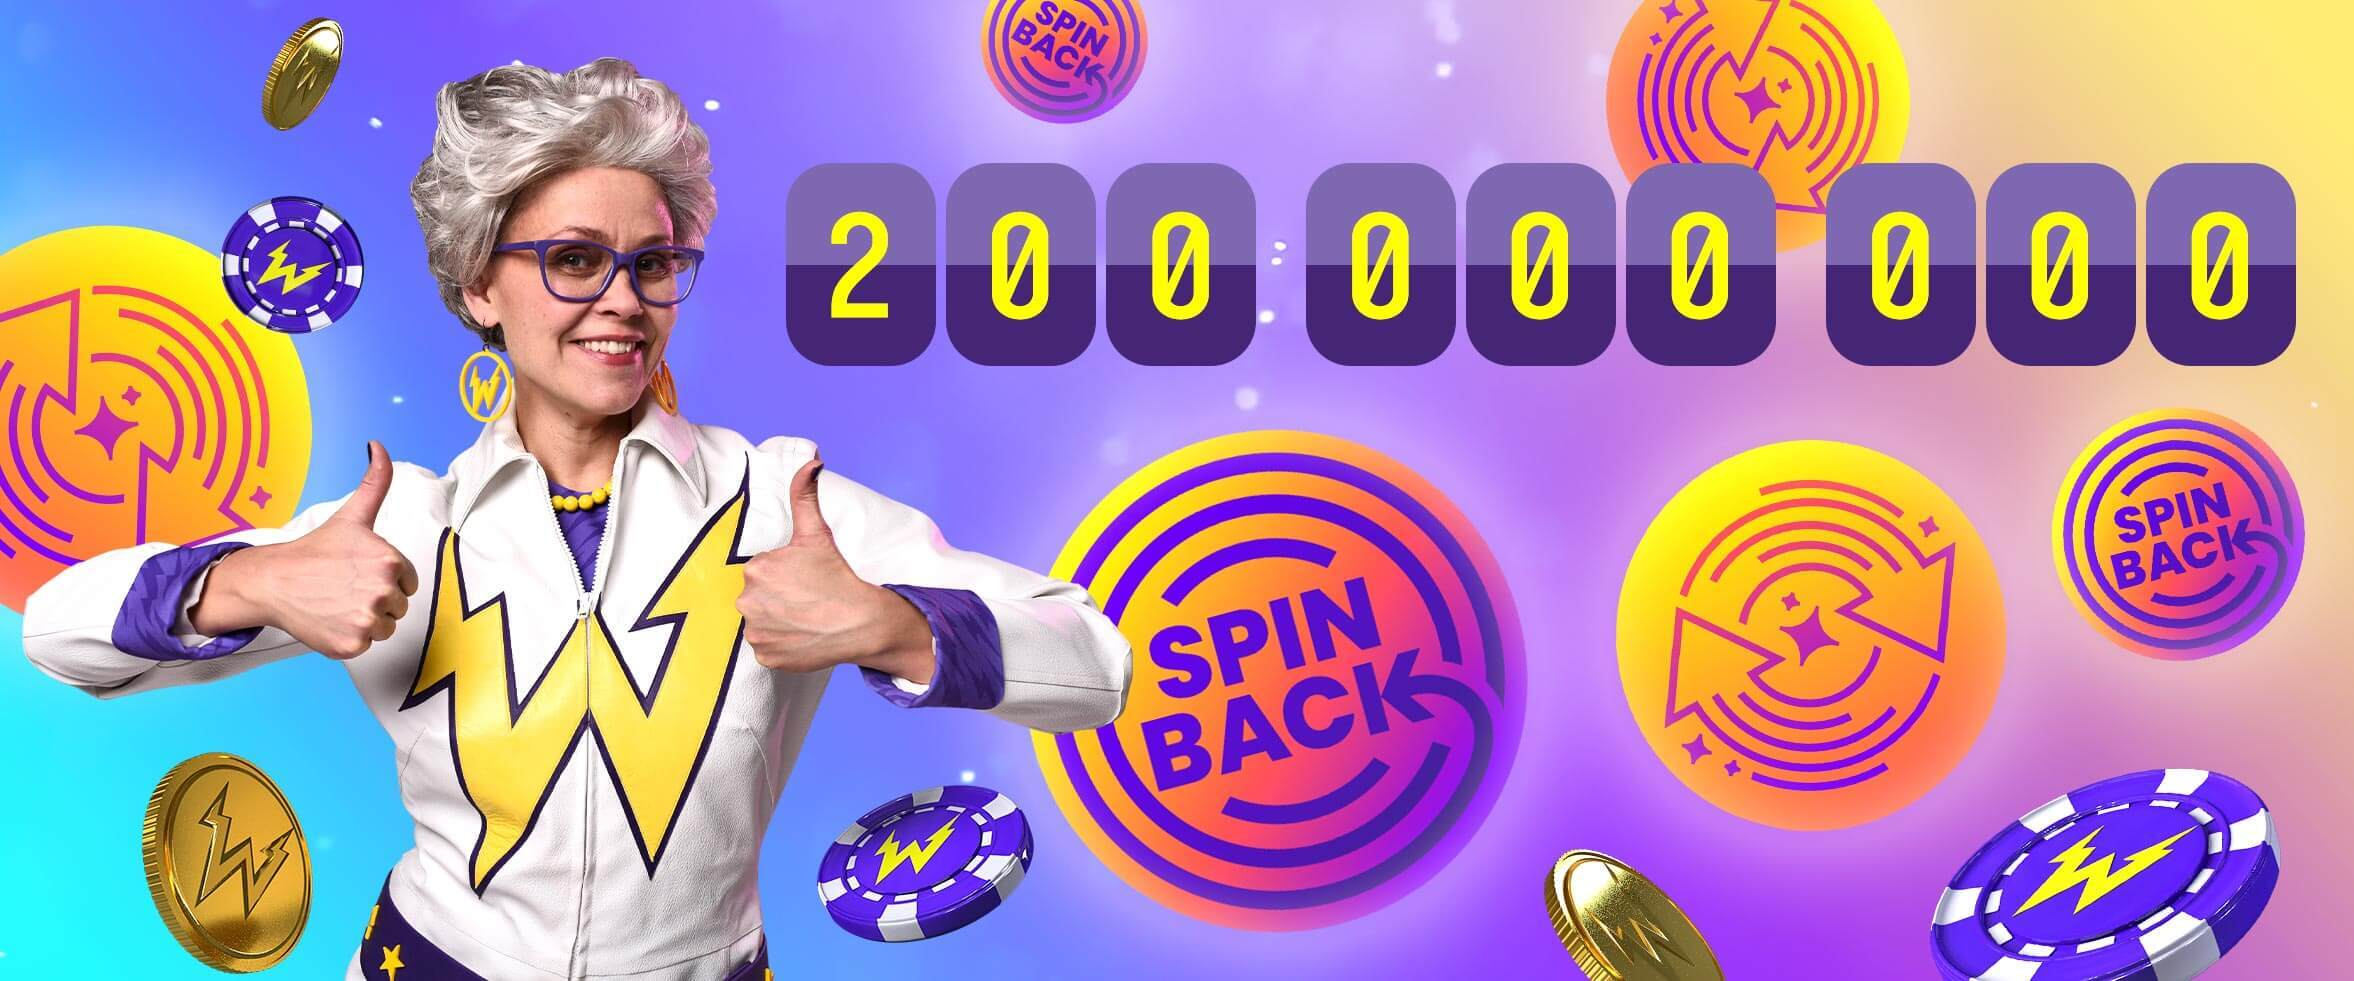 200,000,000th Free Spin Awarded!